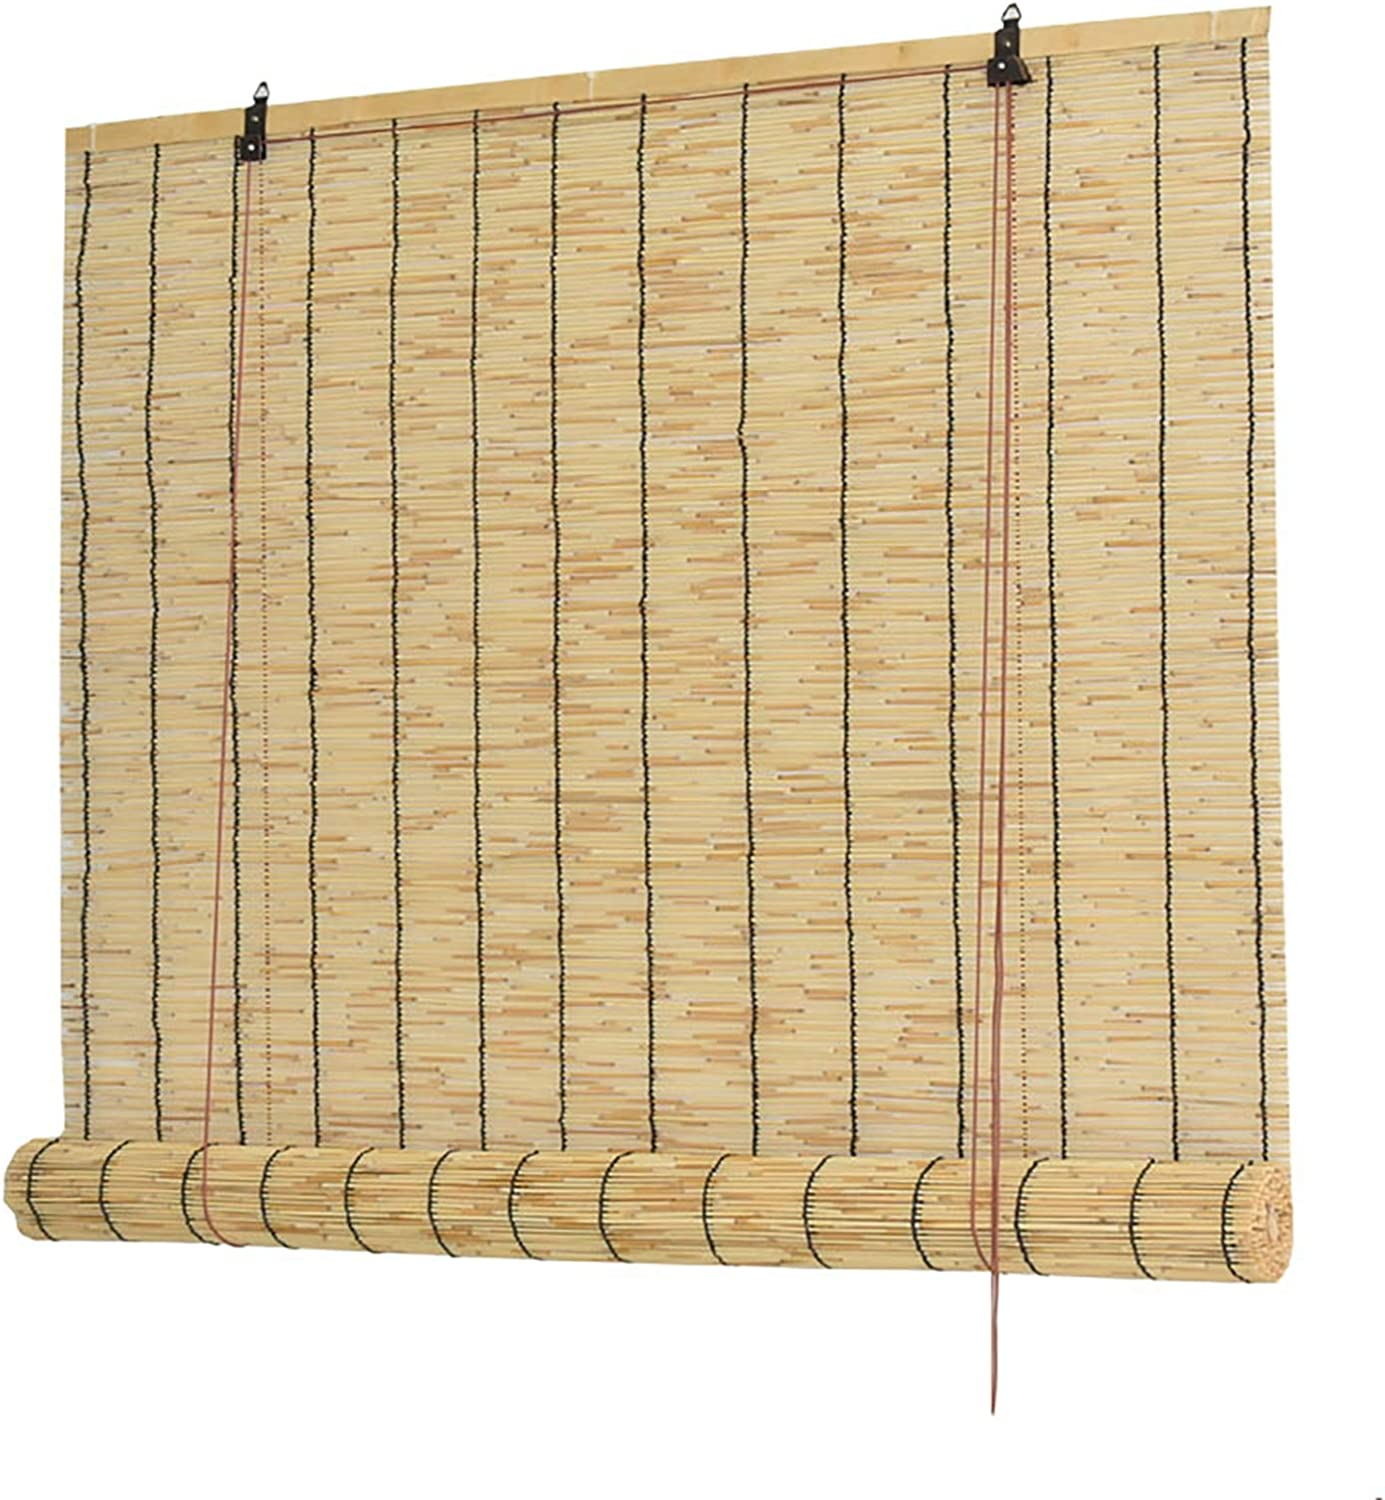 QWEASDF Natural Roll-up Reed Shade, Bamboo Light Filtering Roller Shades, Bamboo Roman Window Blinds, Hand Weave, for Terrace, Garden, Indoor Outdoor Sunshade Home Decoration,90x120cm/36x48in